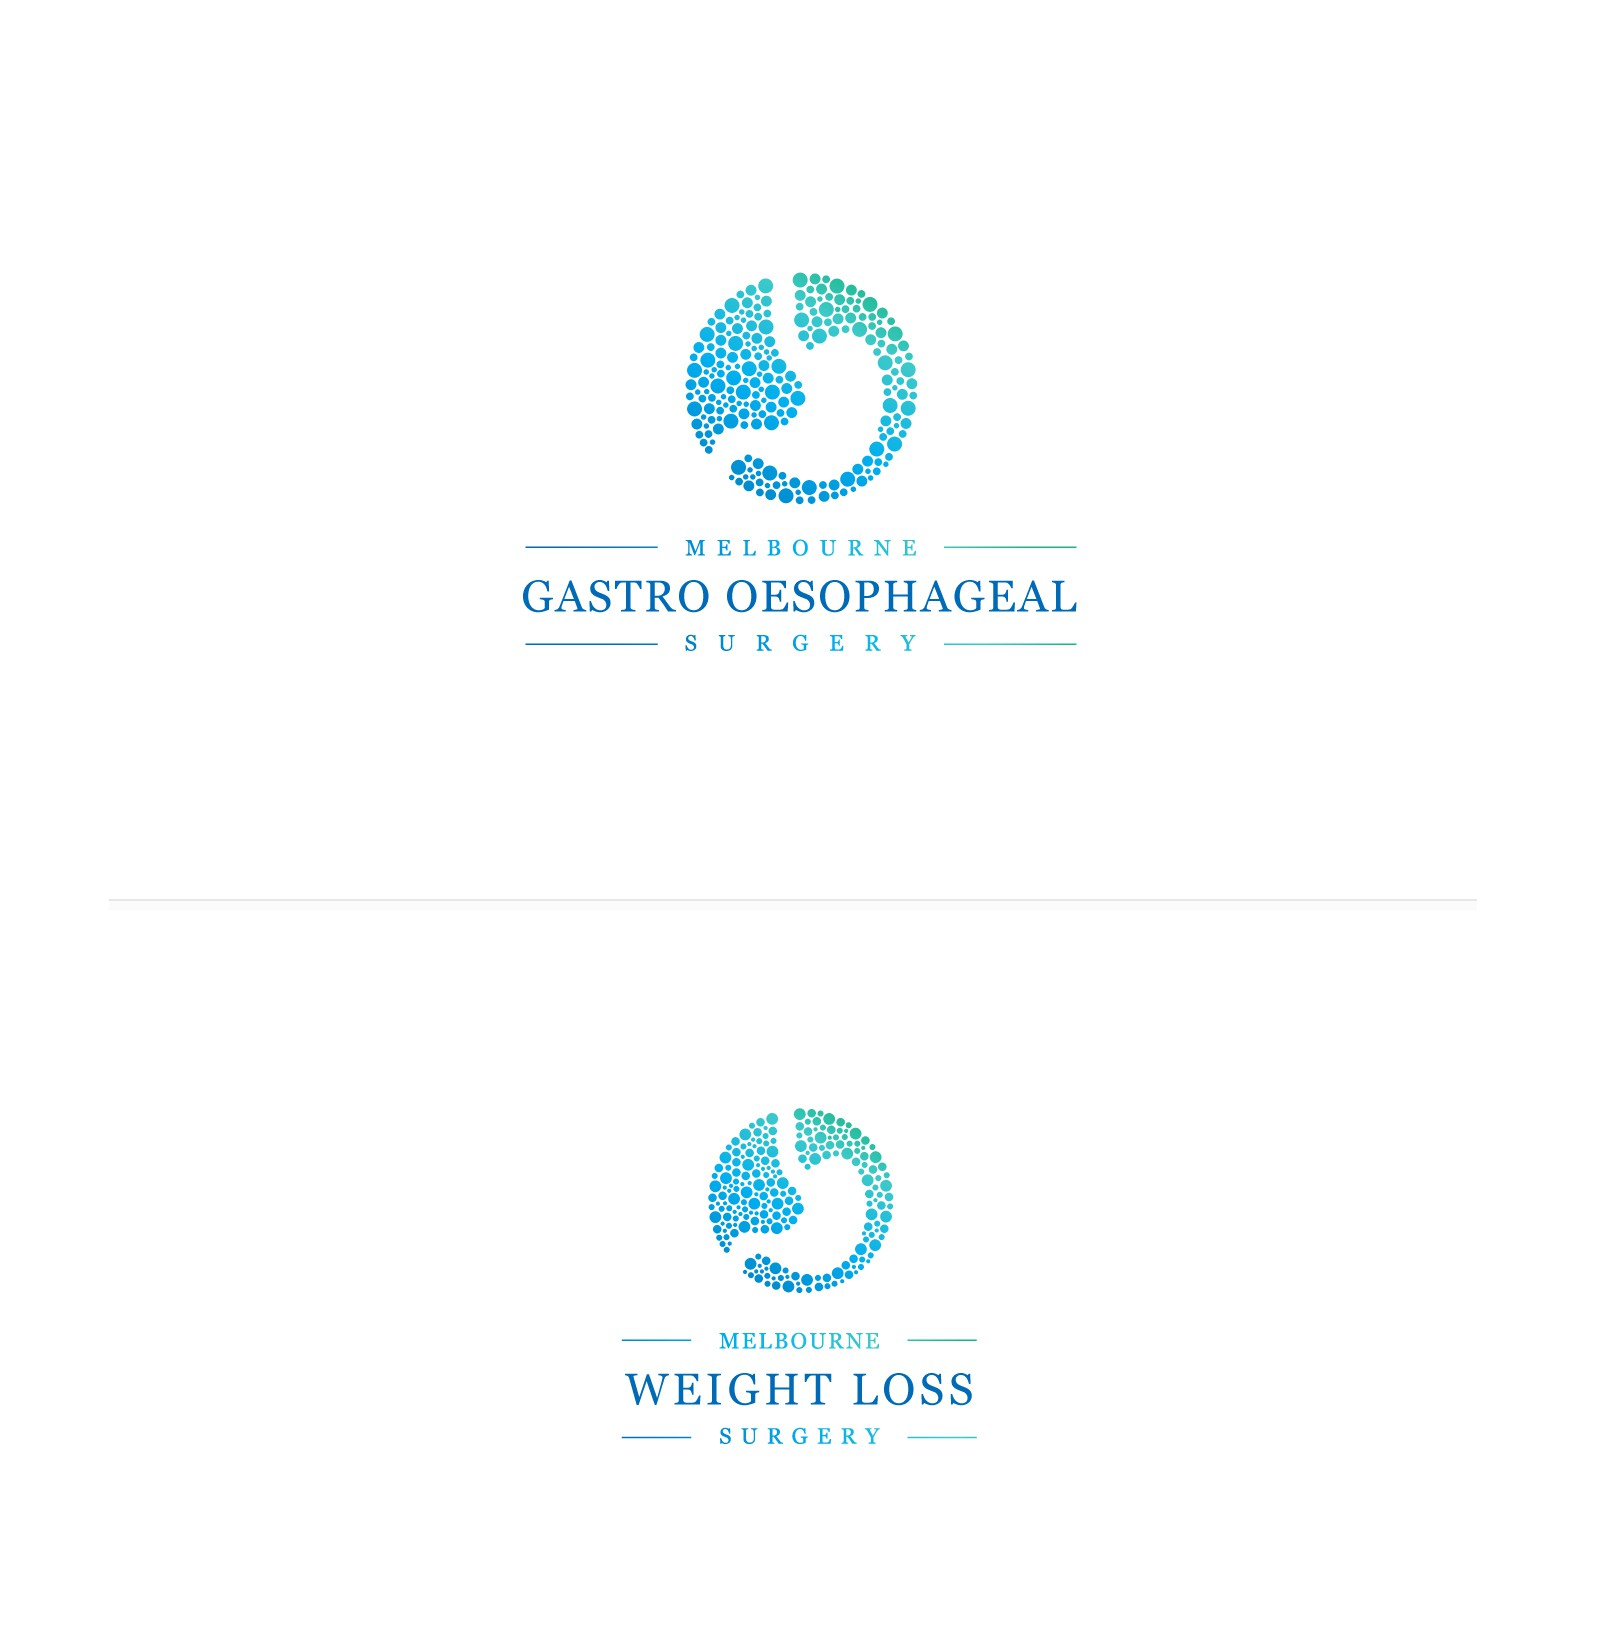 Premium surgical service requires up to date sophisticated and engaging logo.